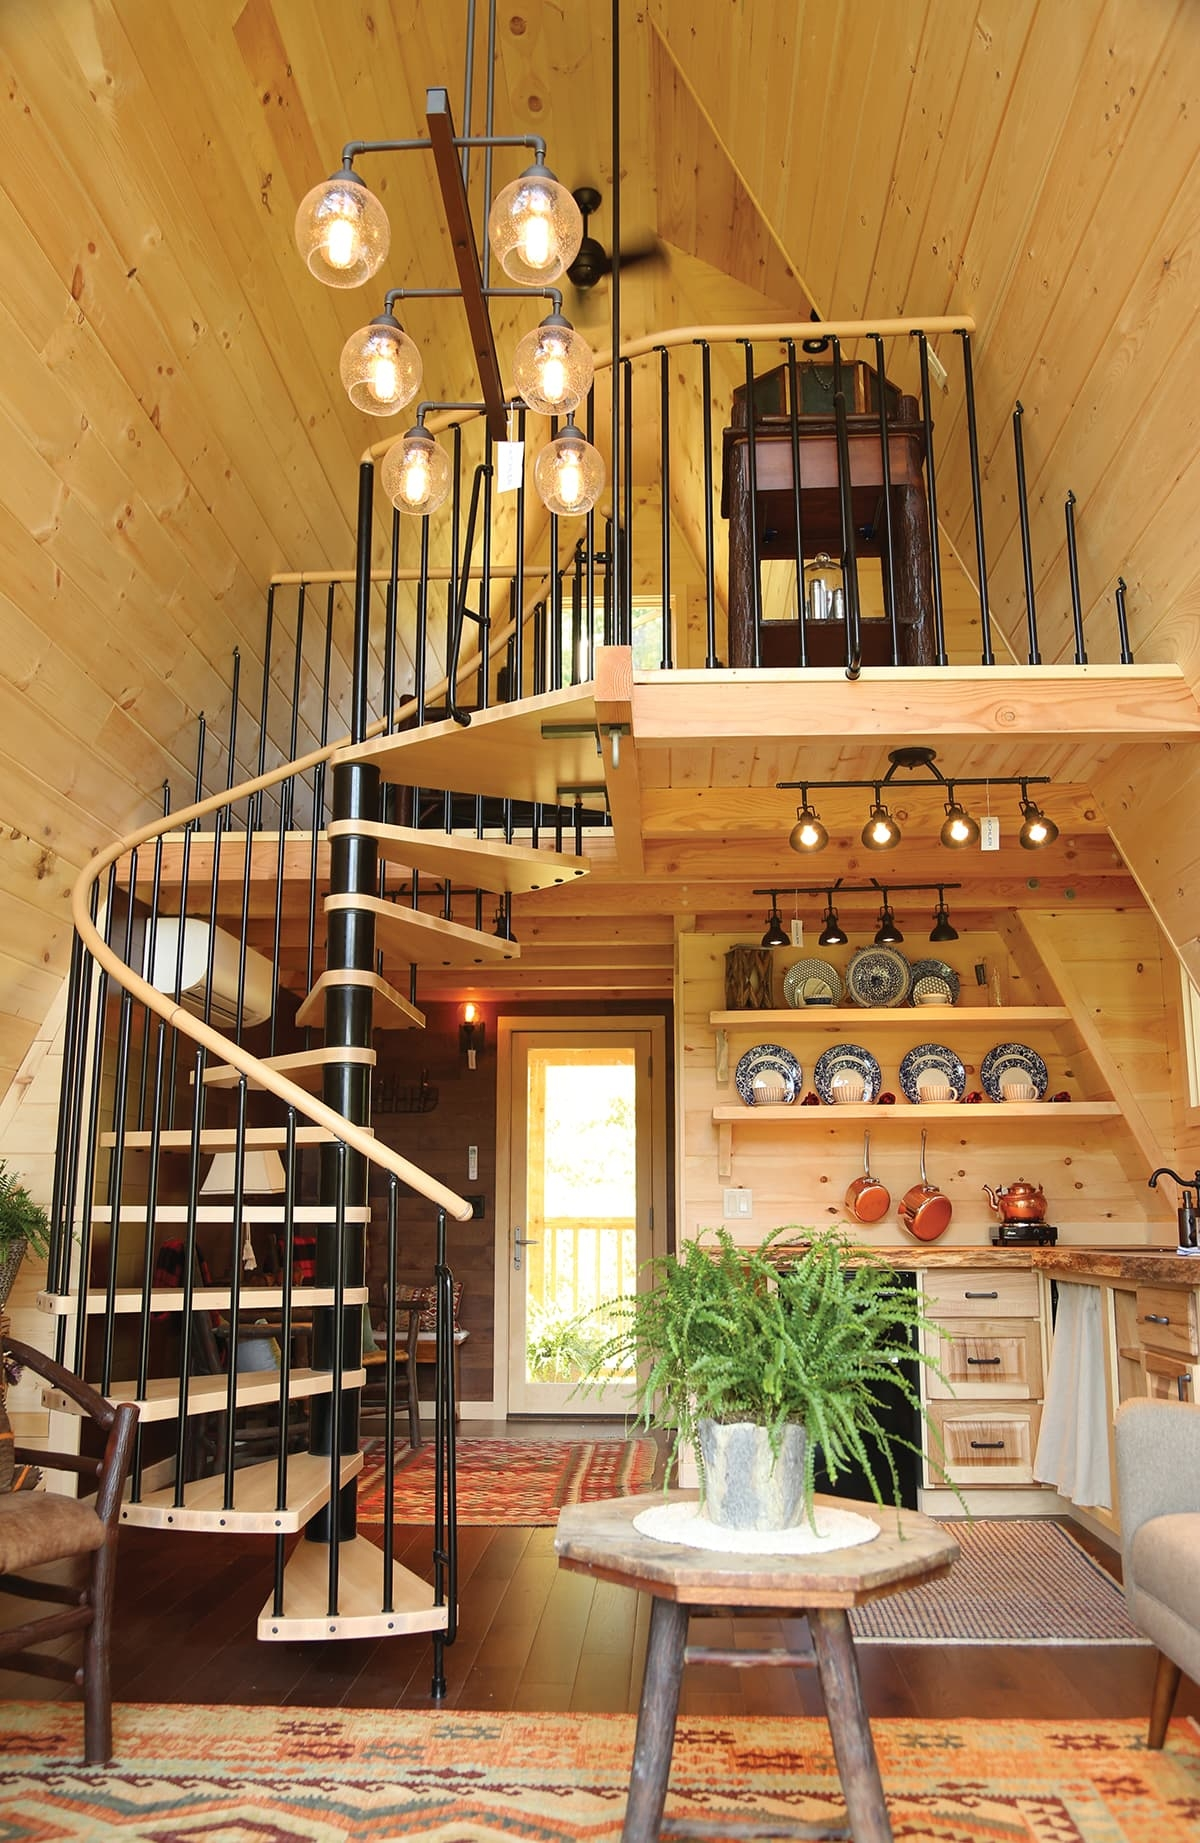 Adding A Spiral Staircase Extreme How To | Installing Spiral Staircase To Basement | Steel | Stair Case | Handrail | Loft Staircase | Staircase Remodel